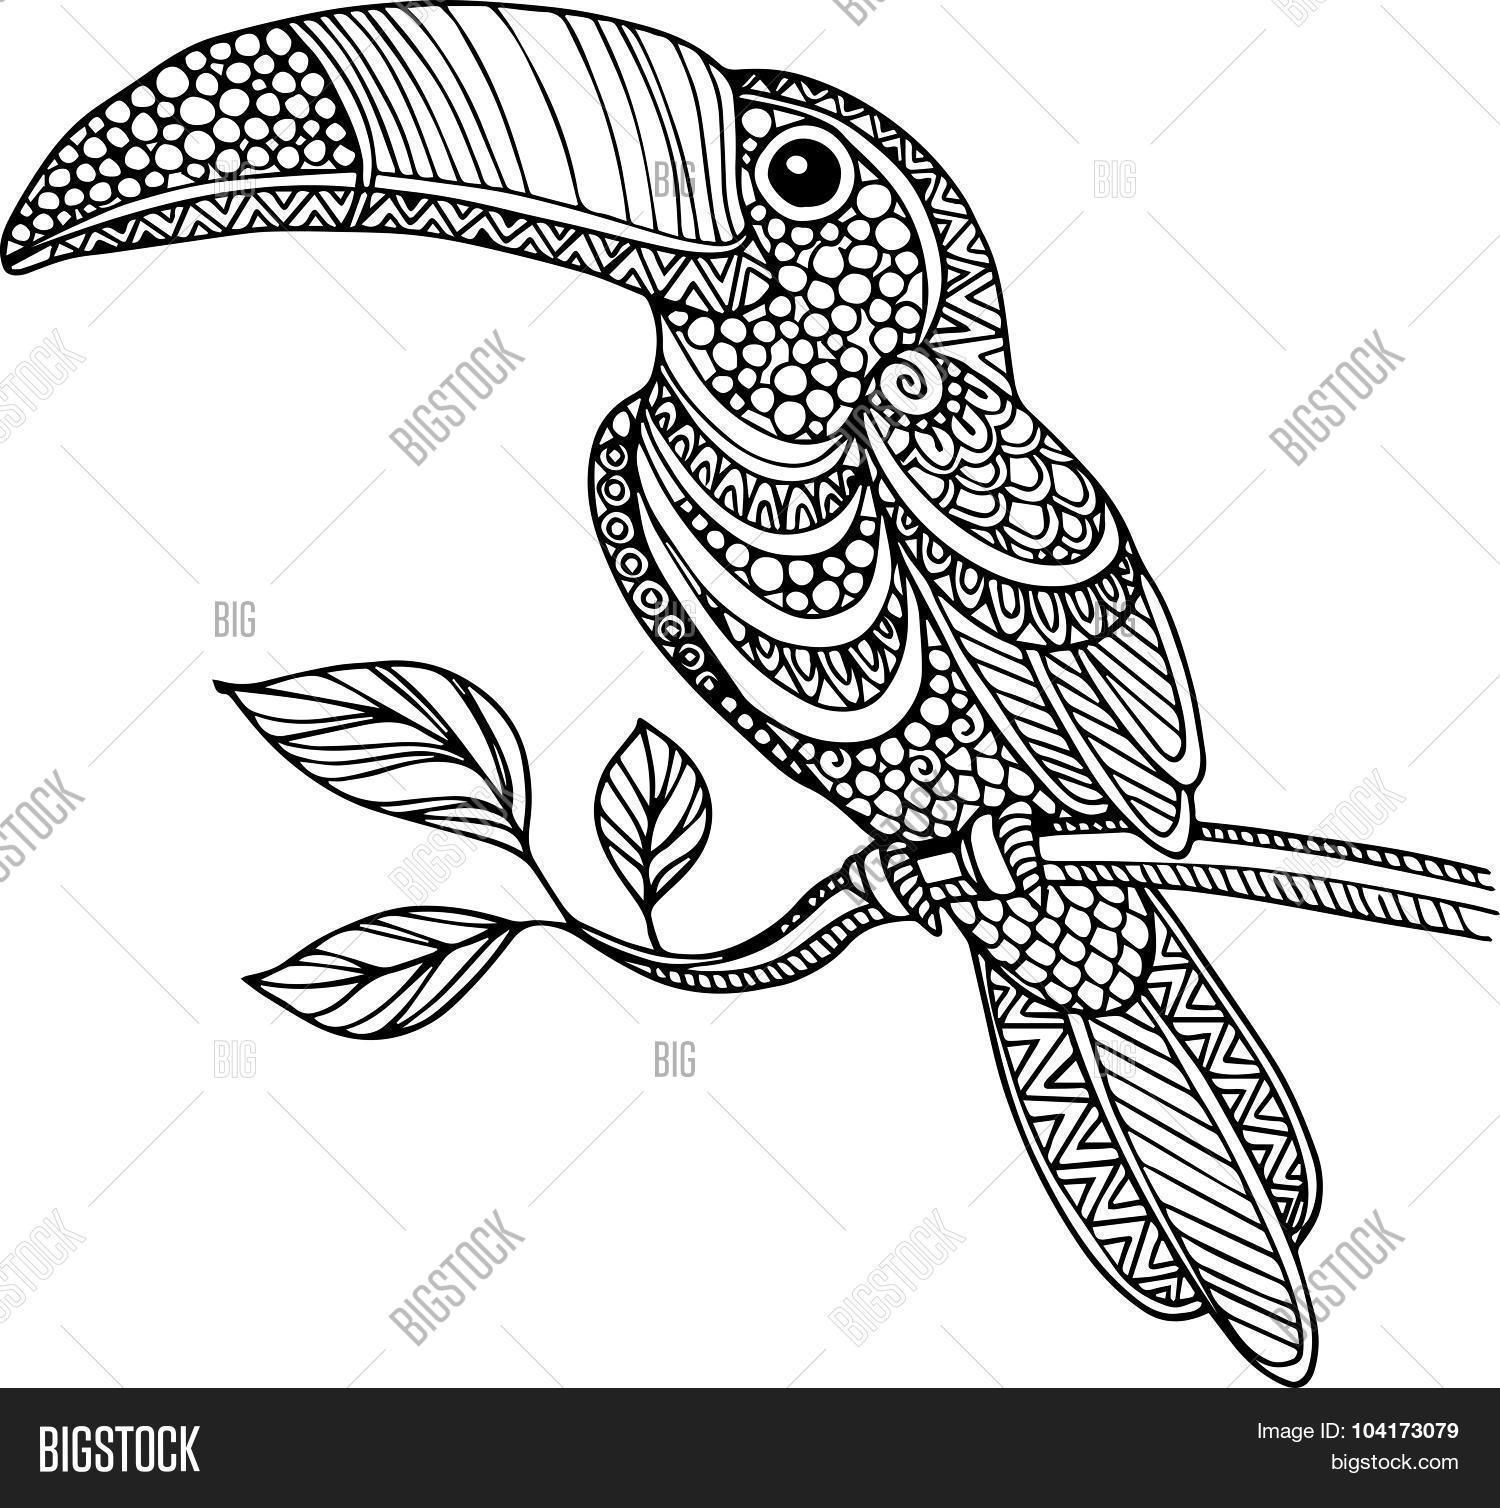 Hand drawn doodle outline toucan illustration decorated with zentangle ornaments art - Coloriage toucan a imprimer ...